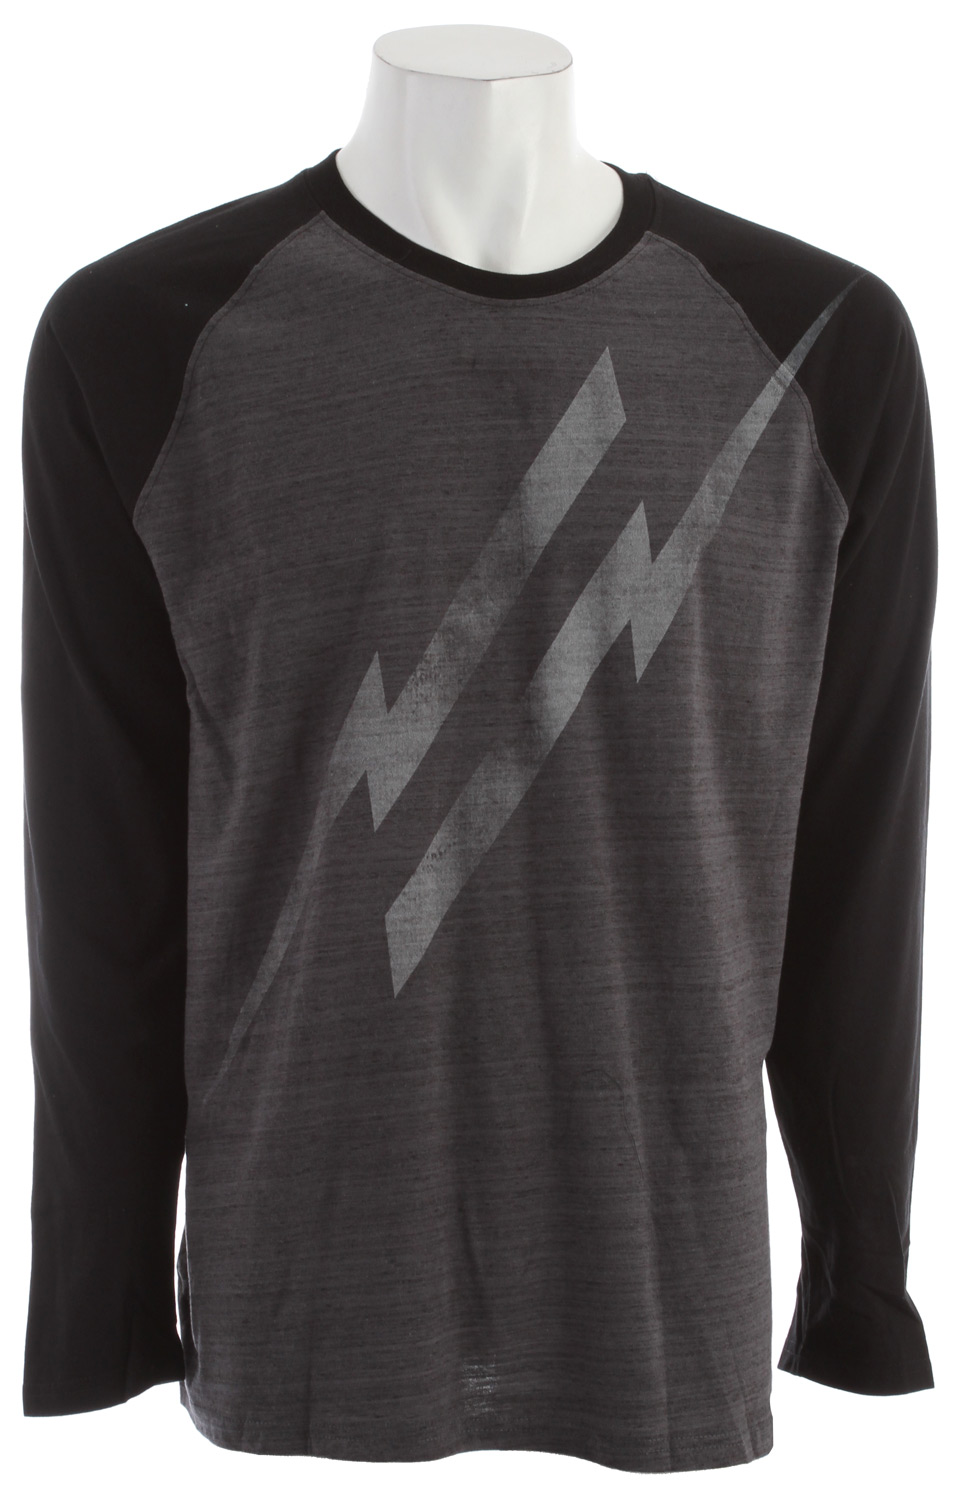 Surf Key Features of the Hurley Electrolite Raglan: Premium Fit Long Sleeve Raglan 30 Singles; 85% Cotton/15% Polyester Marbled Yarns Woven icon loop label, screen-printed inside neck, and soft hand-print. - $19.96